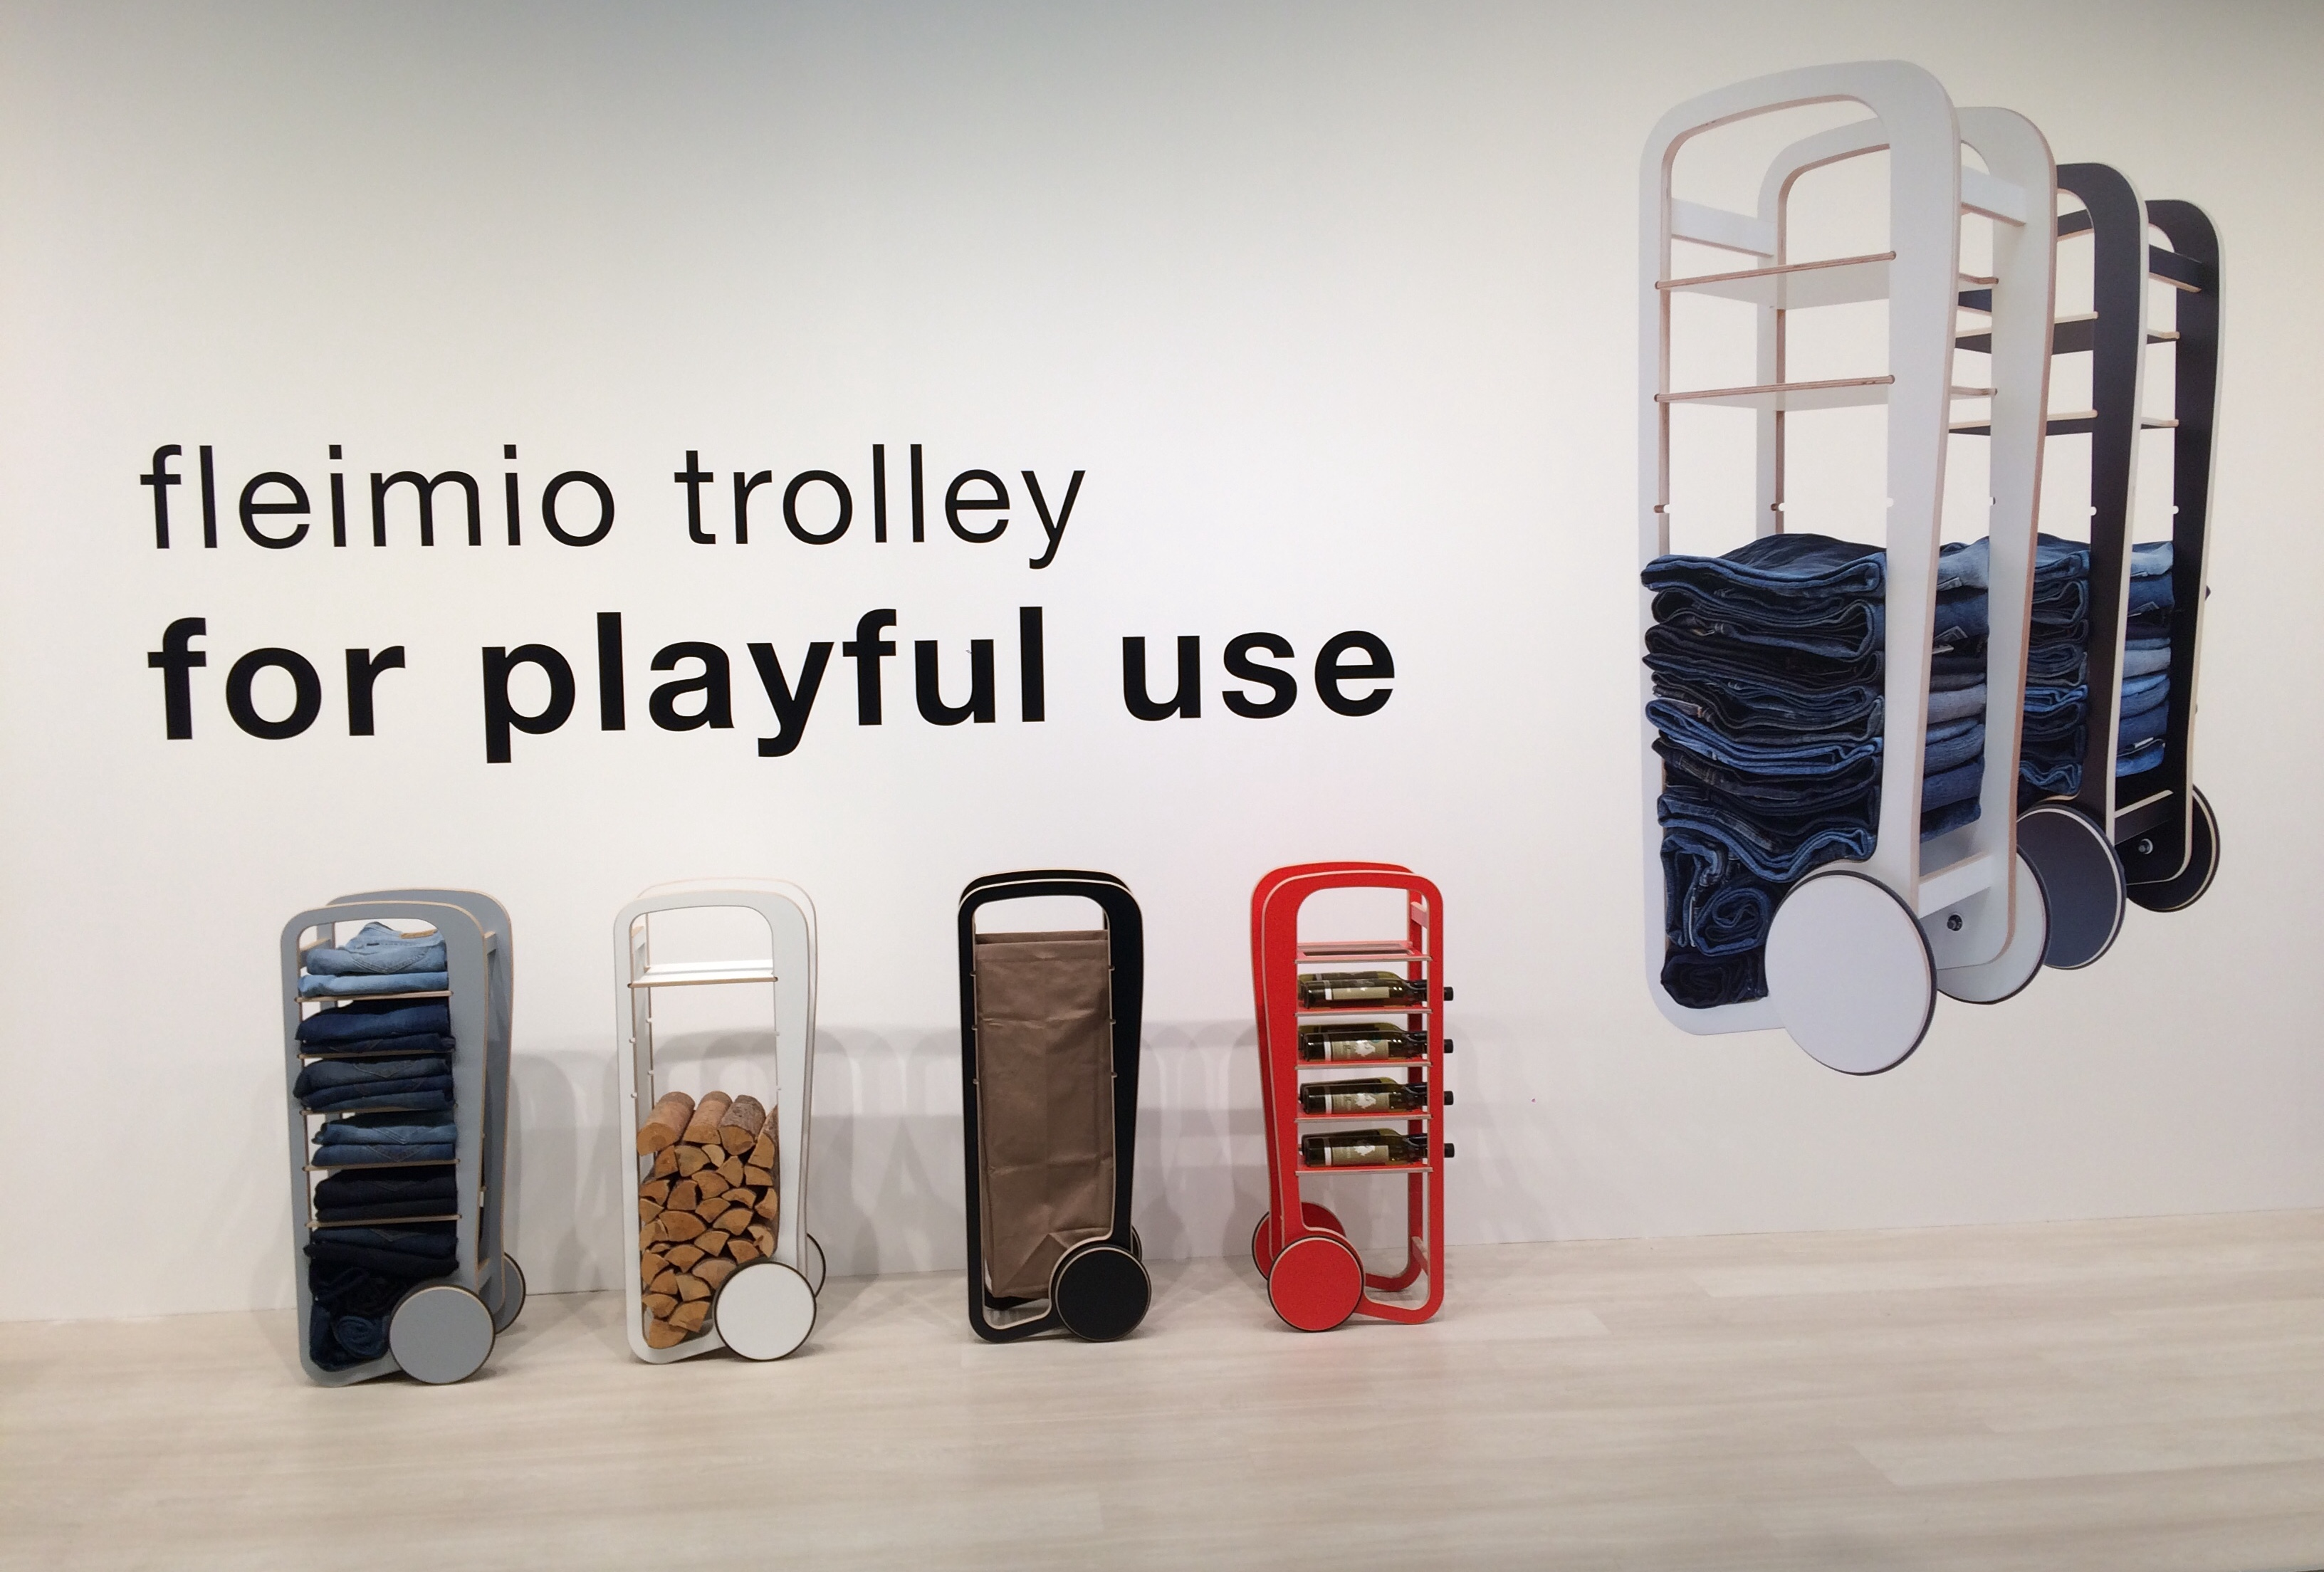 fleimio trolleys at stockholm furniture fair 2018